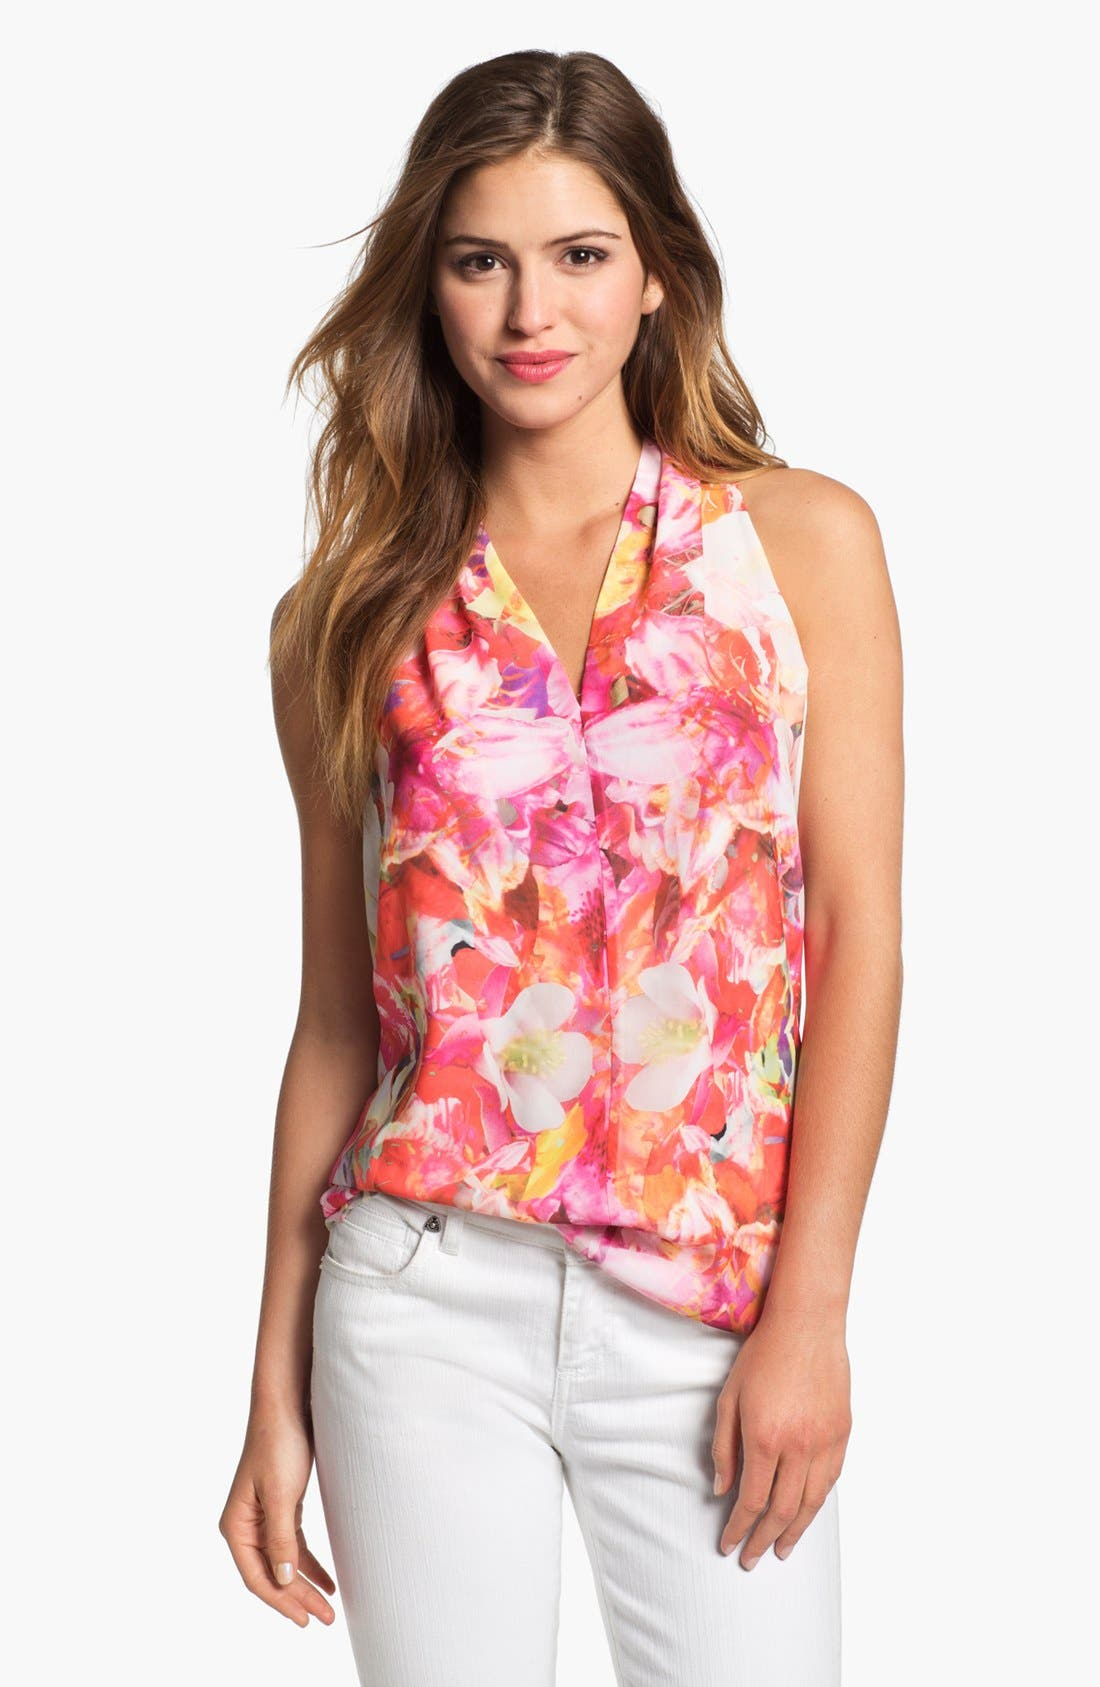 Main Image - Vince Camuto 'Corsage Floral' Sleeveless Blouse (Petite)